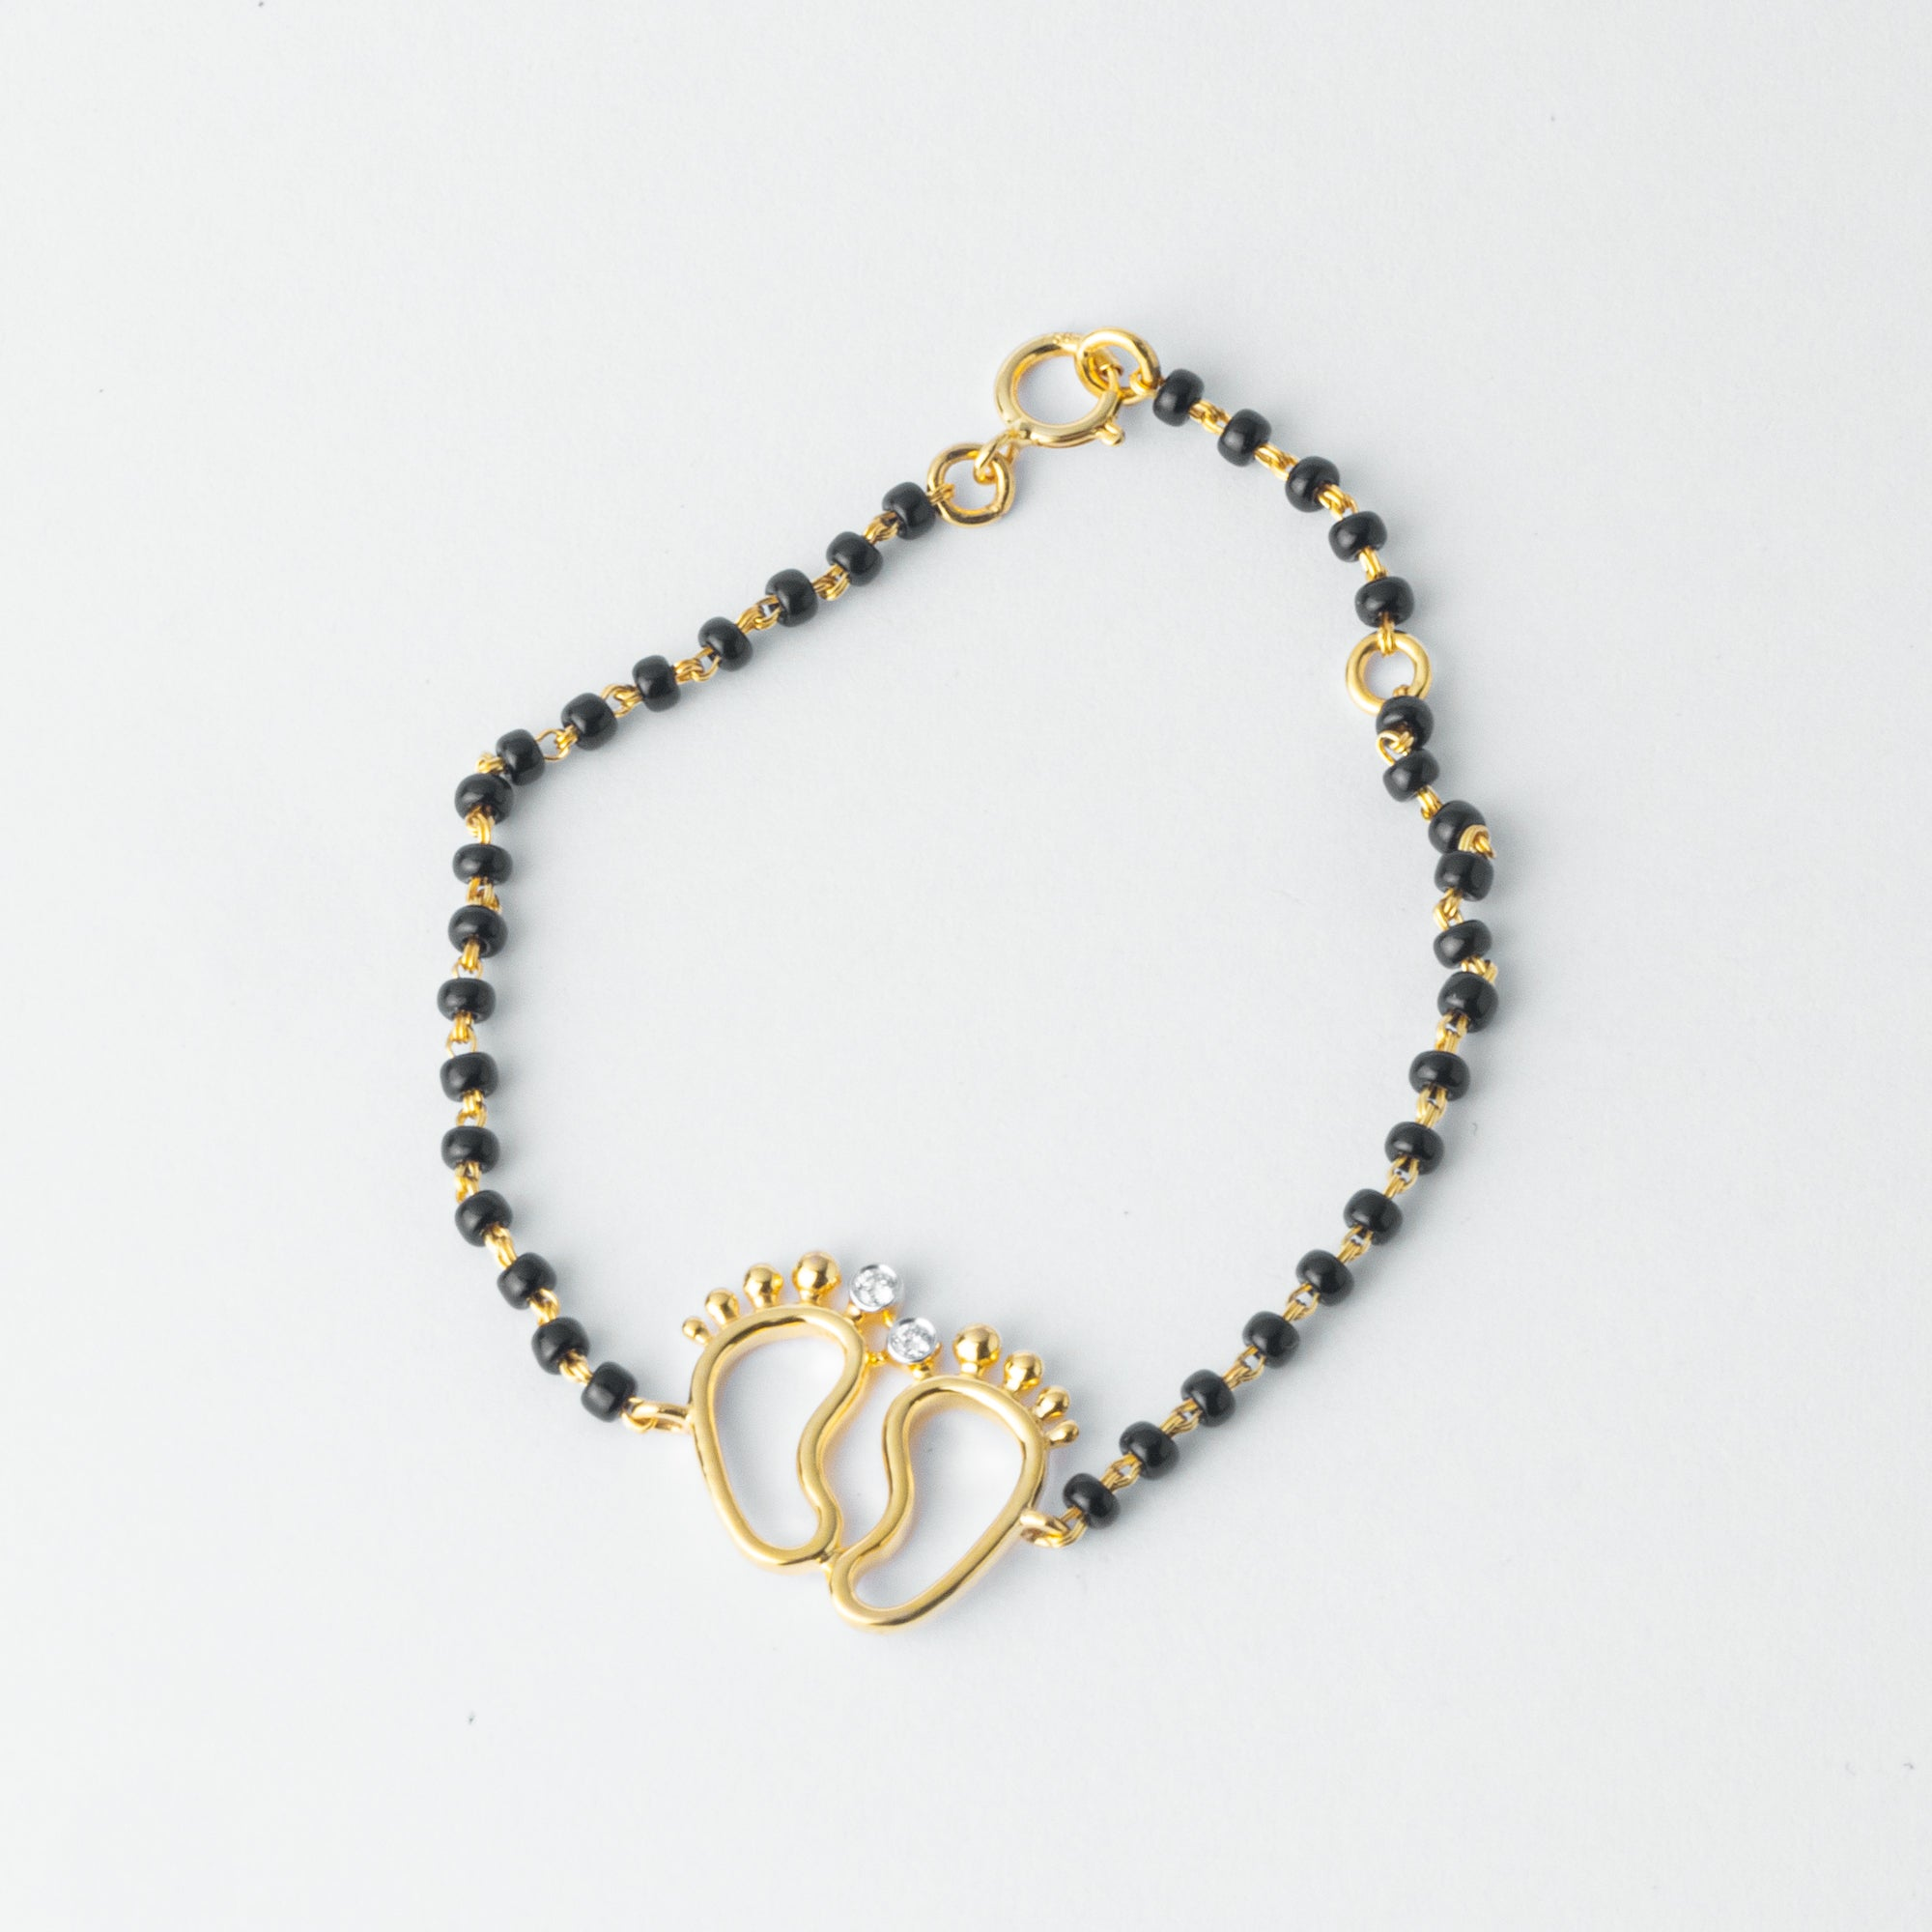 18ct Yellow or White Gold Diamond Children's Bracelet with Feet and Black Beads MCS4275